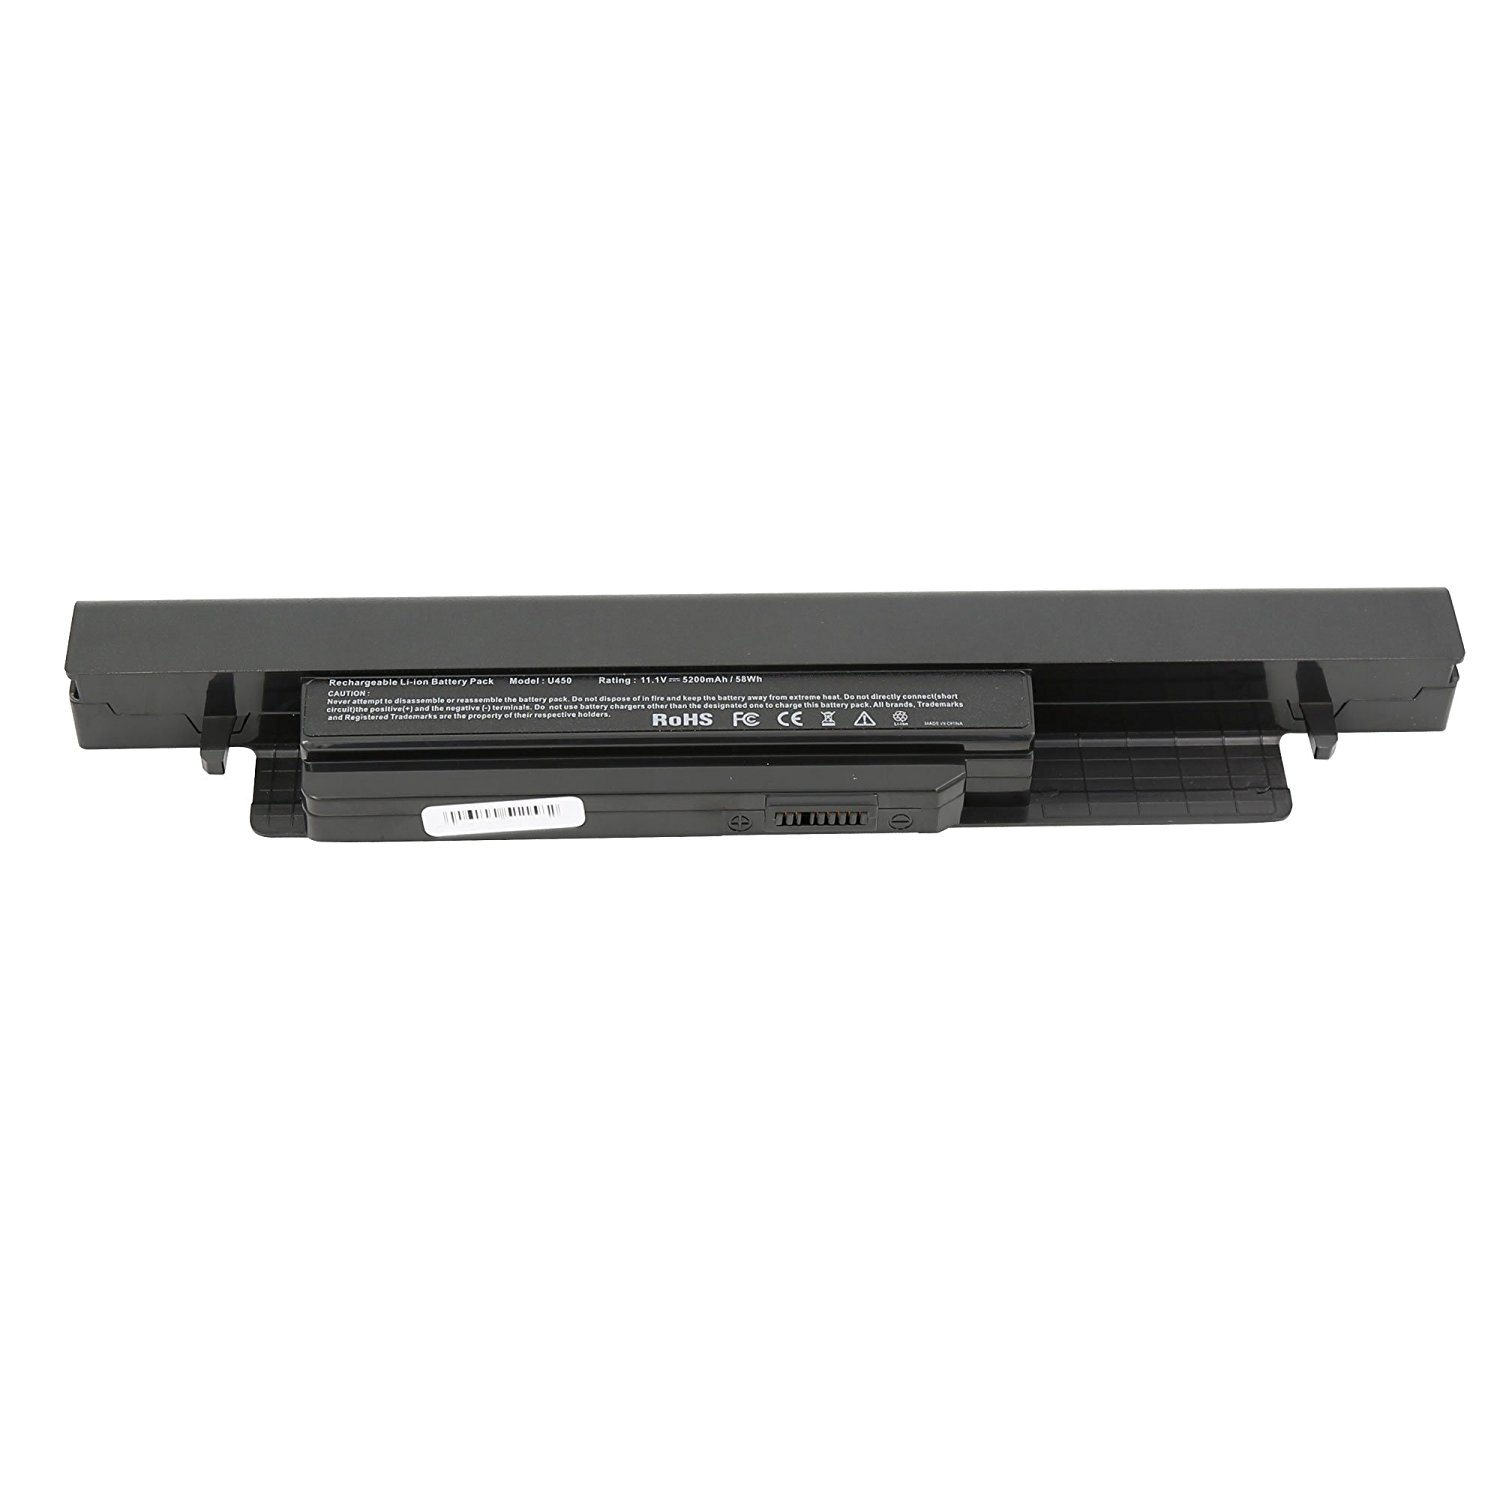 IBM Lenovo IdeaPad U450P 20031 3389 U550 replacement battery